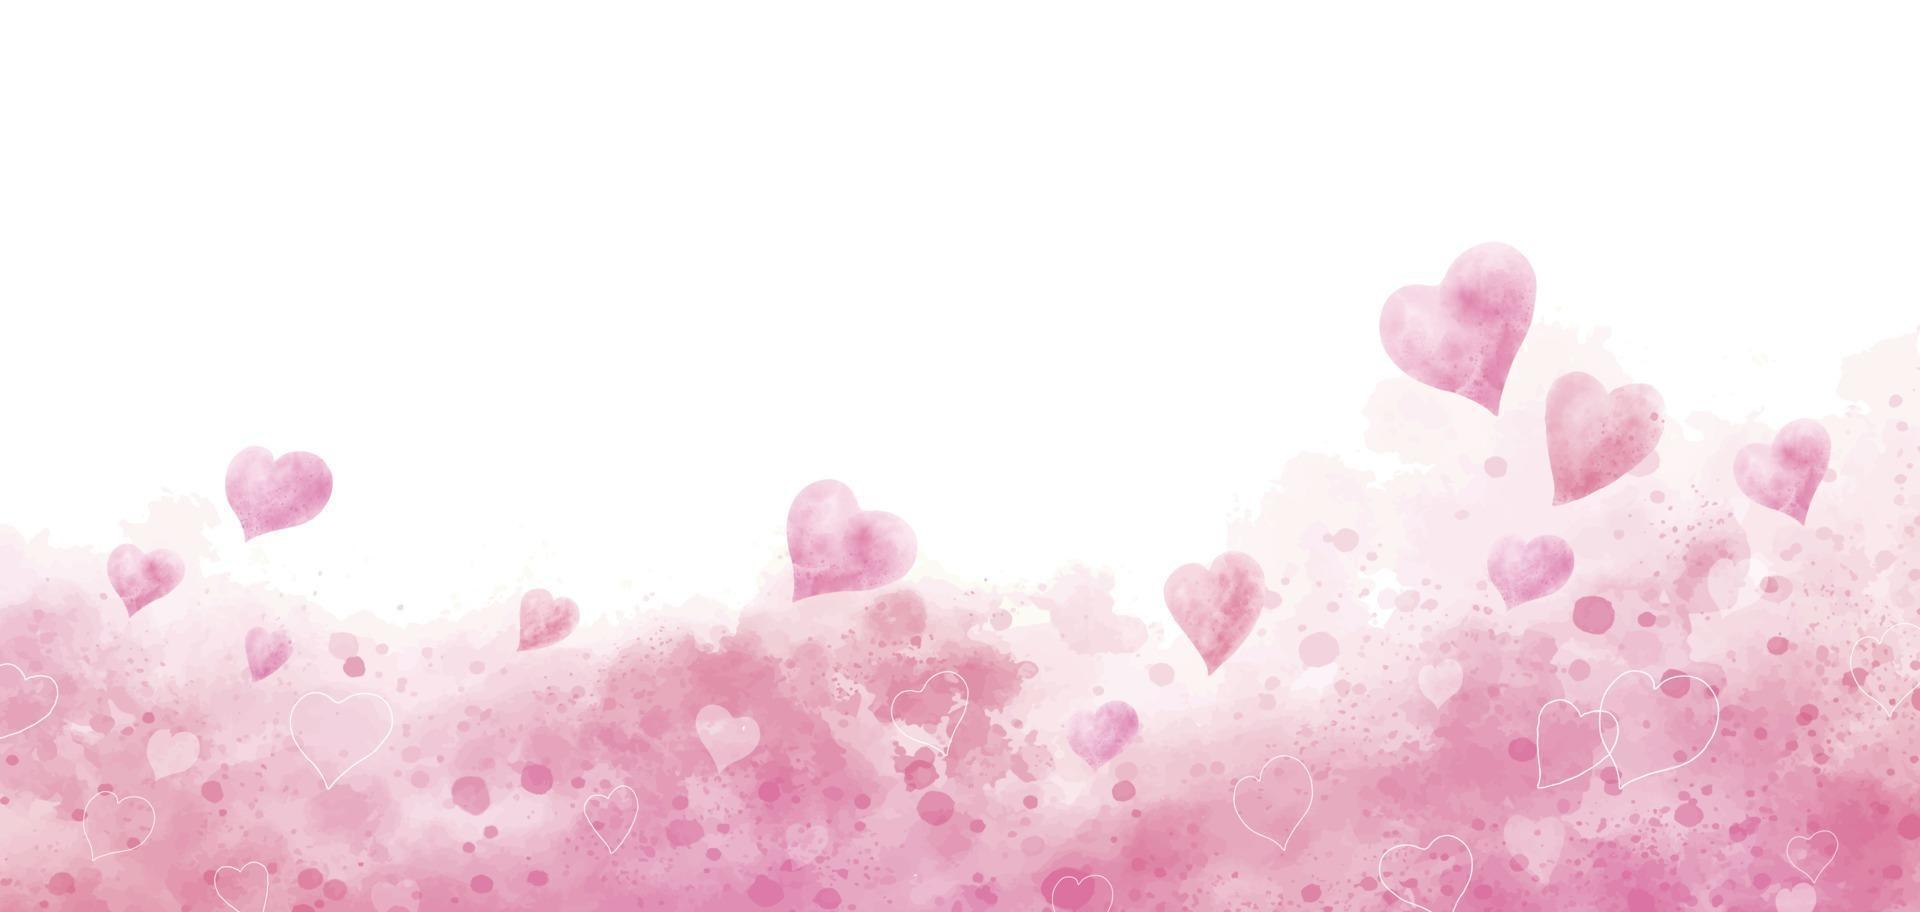 Valentine S Day And Wedding Background Design Of Watercolor Hearts Vector Illustration 2011637 Vector Art At Vecteezy